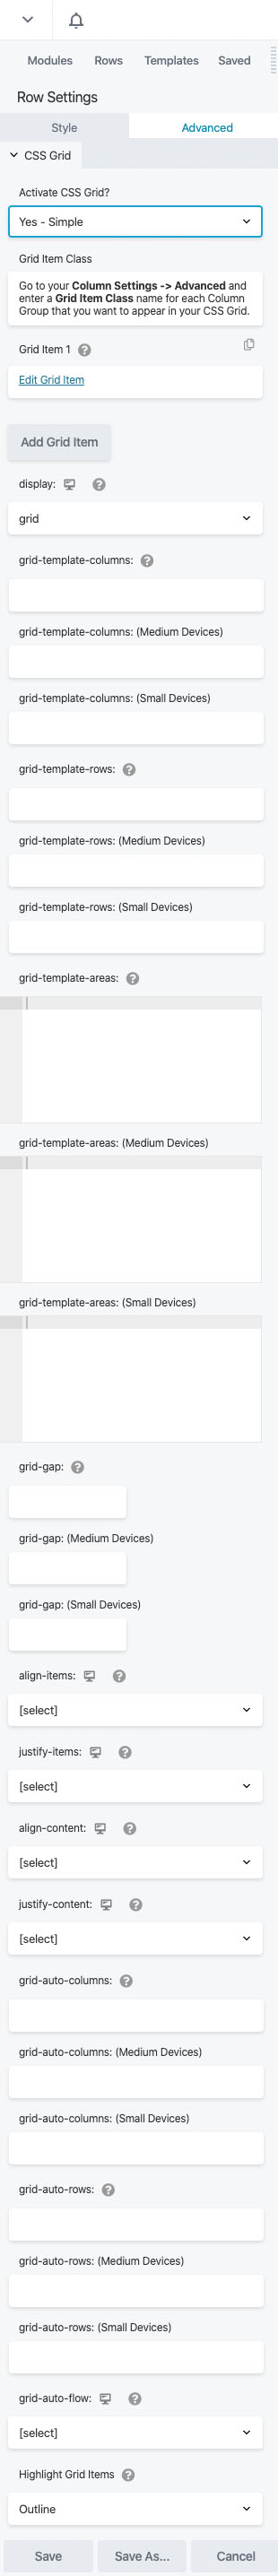 CSS-Grid-Simple-Options.jpg